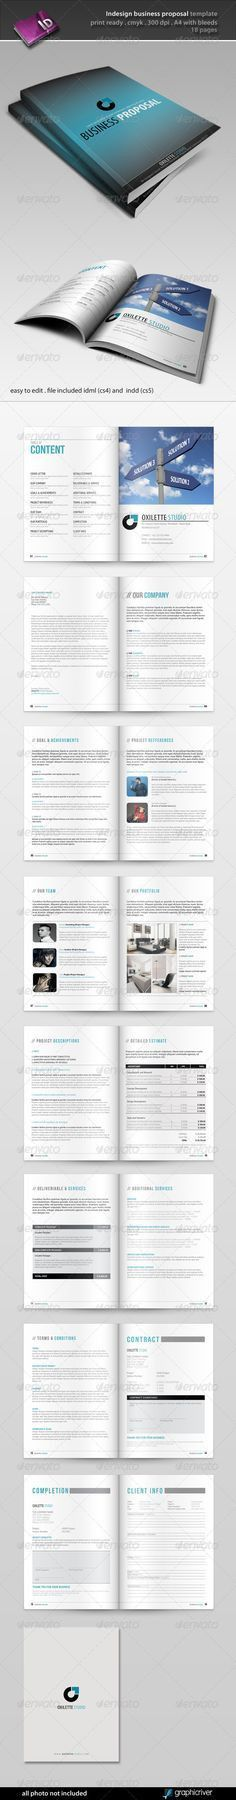 White Paper Design | White Paper Designs | Pinterest | White paper ...